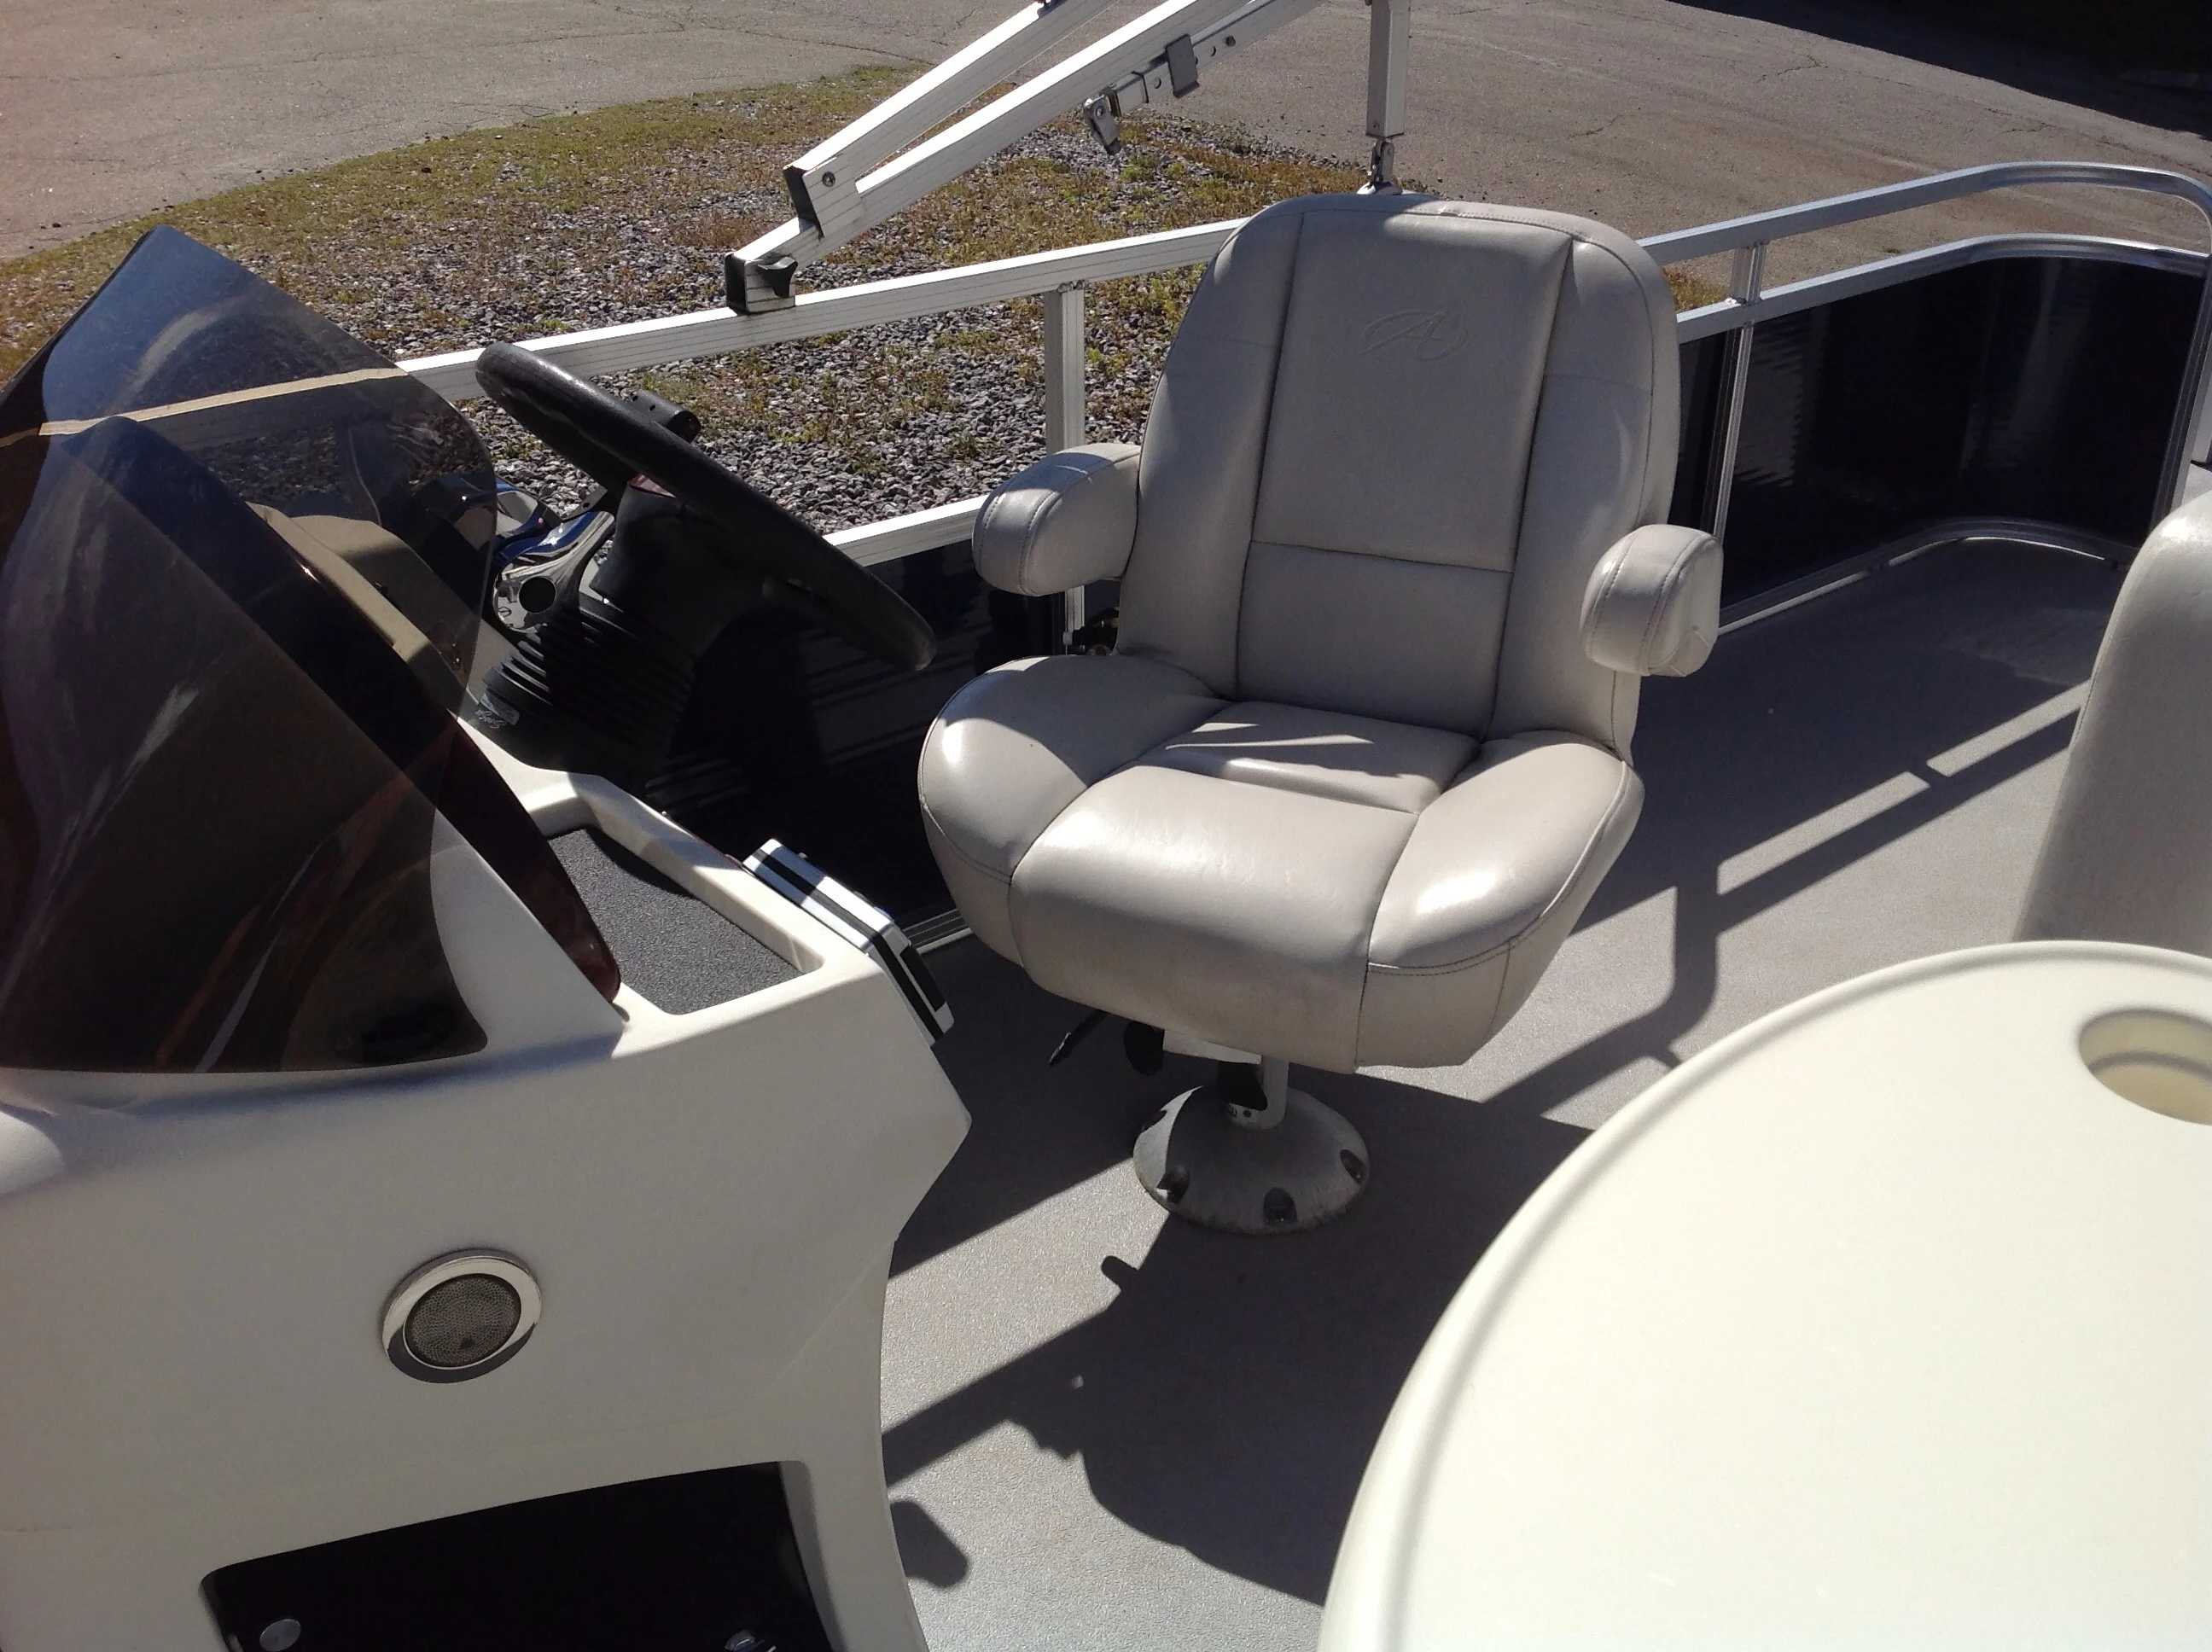 2012 Avalon boat for sale, model of the boat is Catalina Drl 2485 & Image # 8 of 14